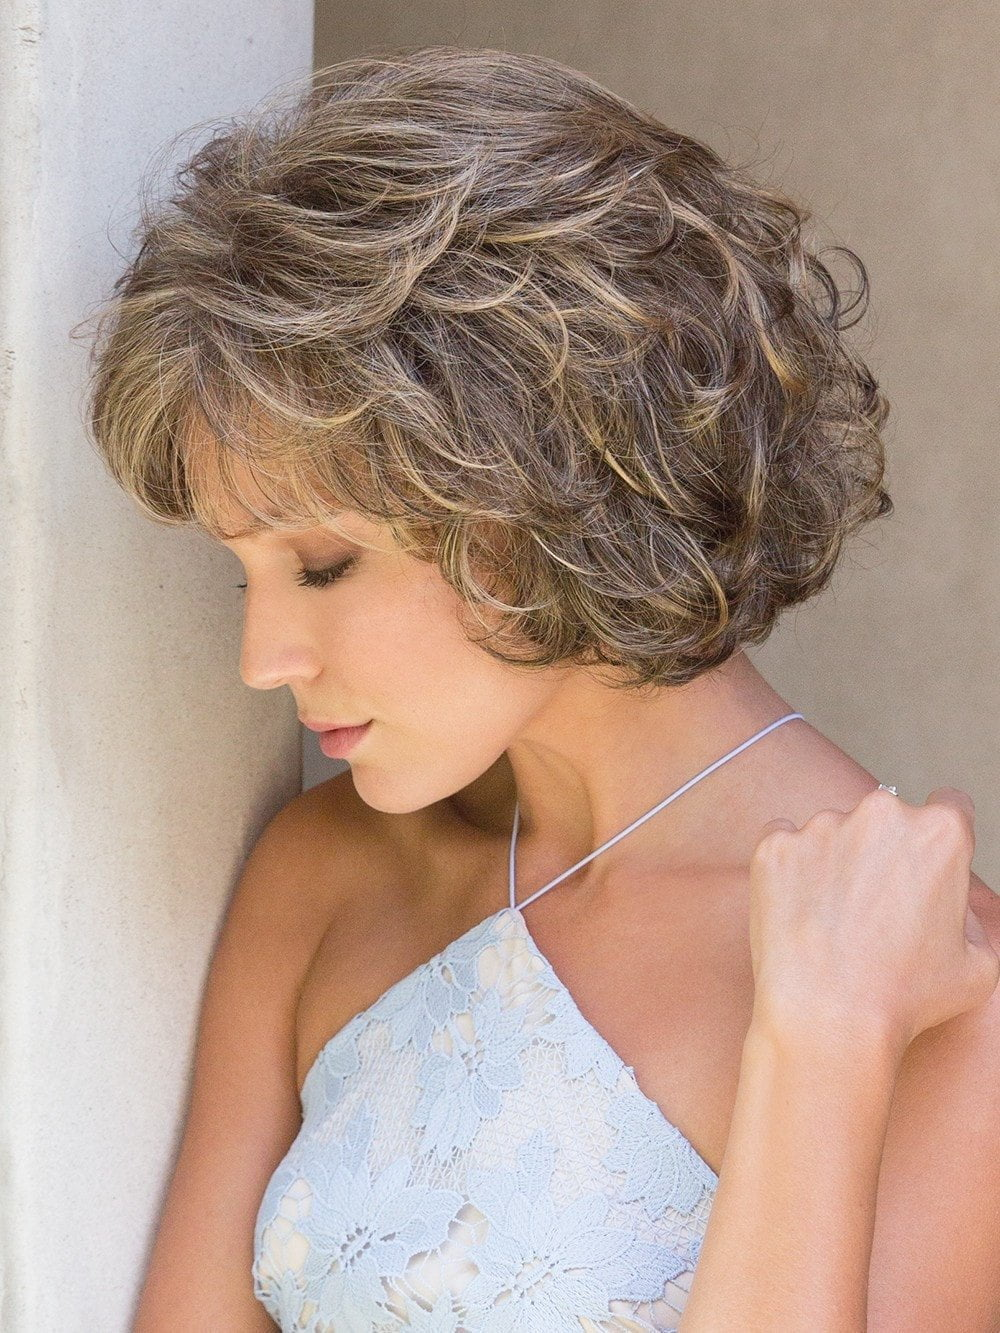 Mariah by Noriko is simply elegant, a beautiful chin length Bob with soft tousled curls